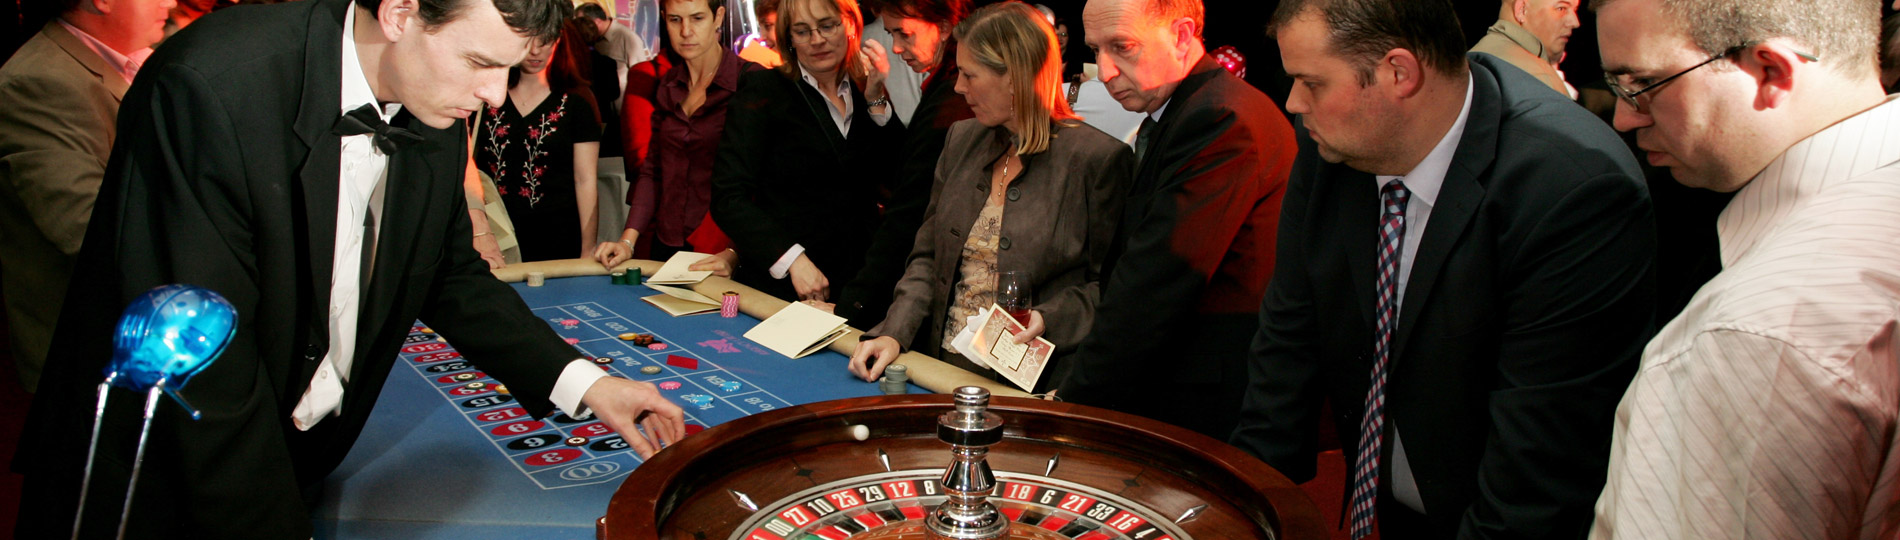 The glamour and excitement of a Las Vegas Casino without any of the risk – ideal for company parties and evening events